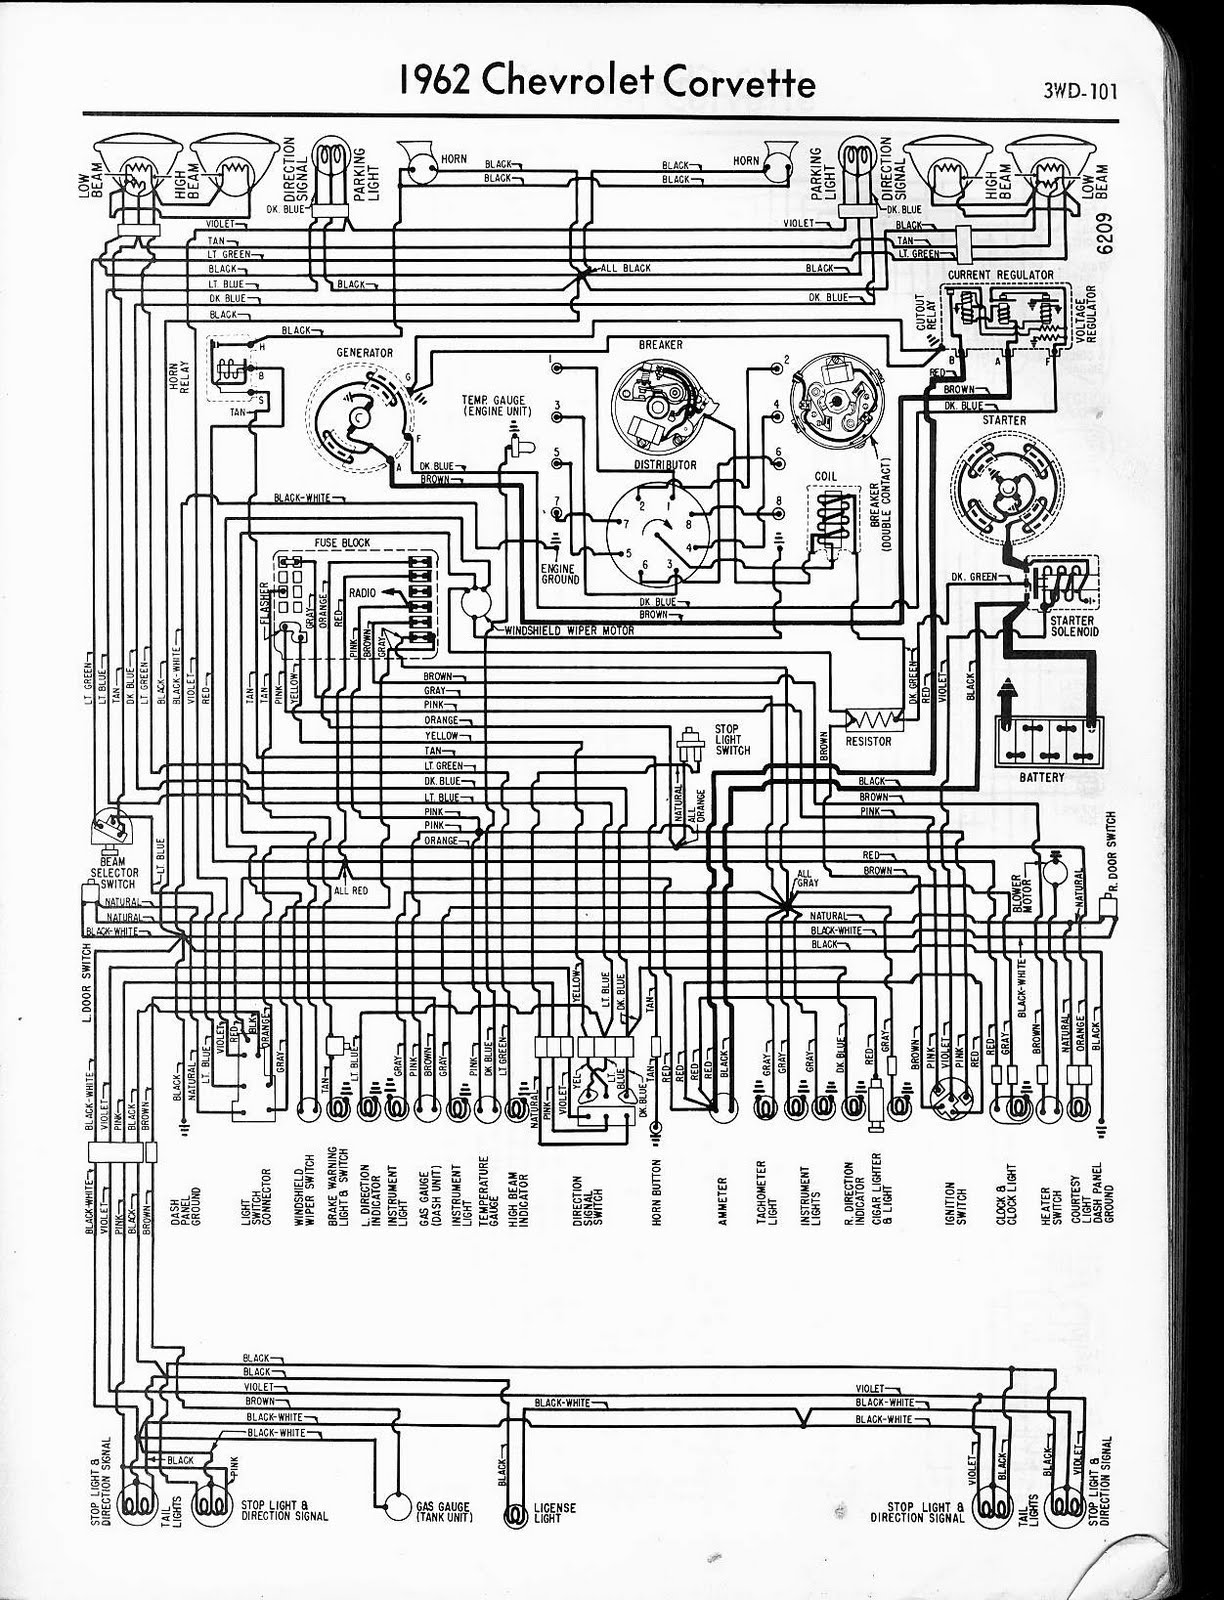 1962 chevy corvette wiring diagram jpg wiring diagram for 1966 corvette € the wiring diagram 1224 x 1600